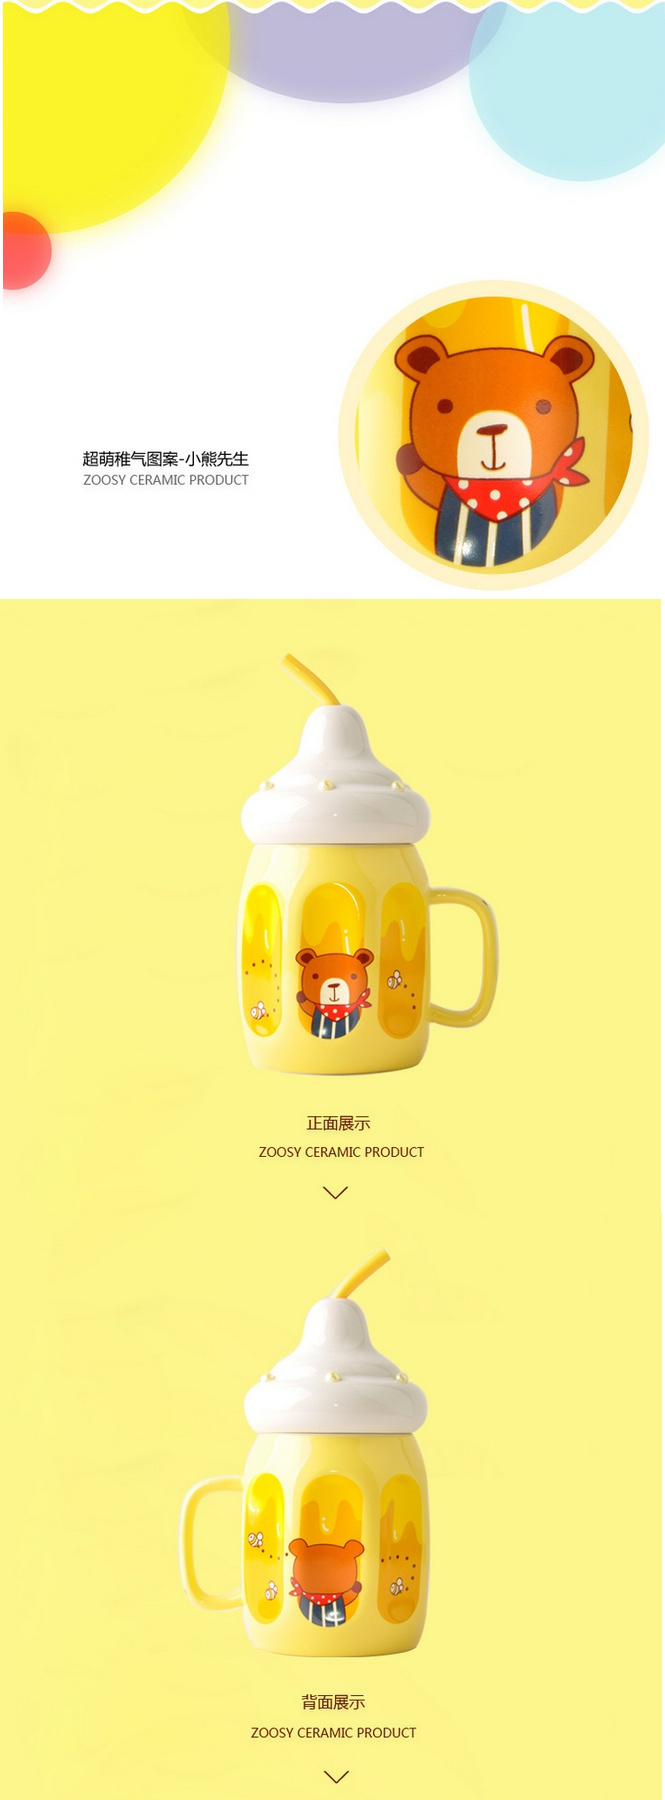 Northern wind mark cup express picking cups of water glass ceramic cups with cover milk tea ultimately responds with a straw